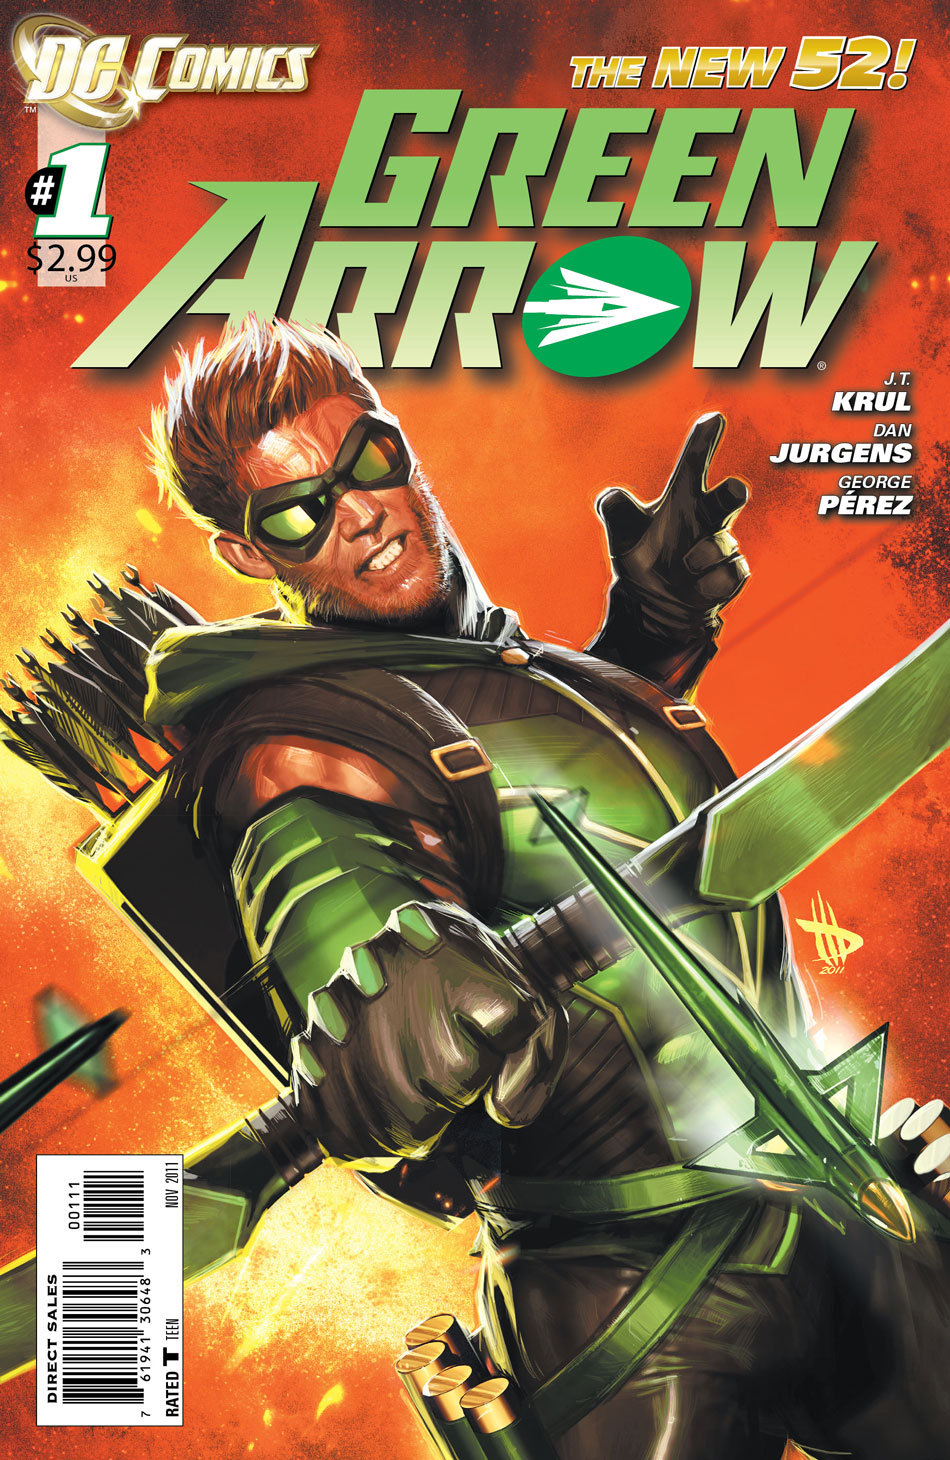 Green Arrow #1 cover by Dave Wilkins